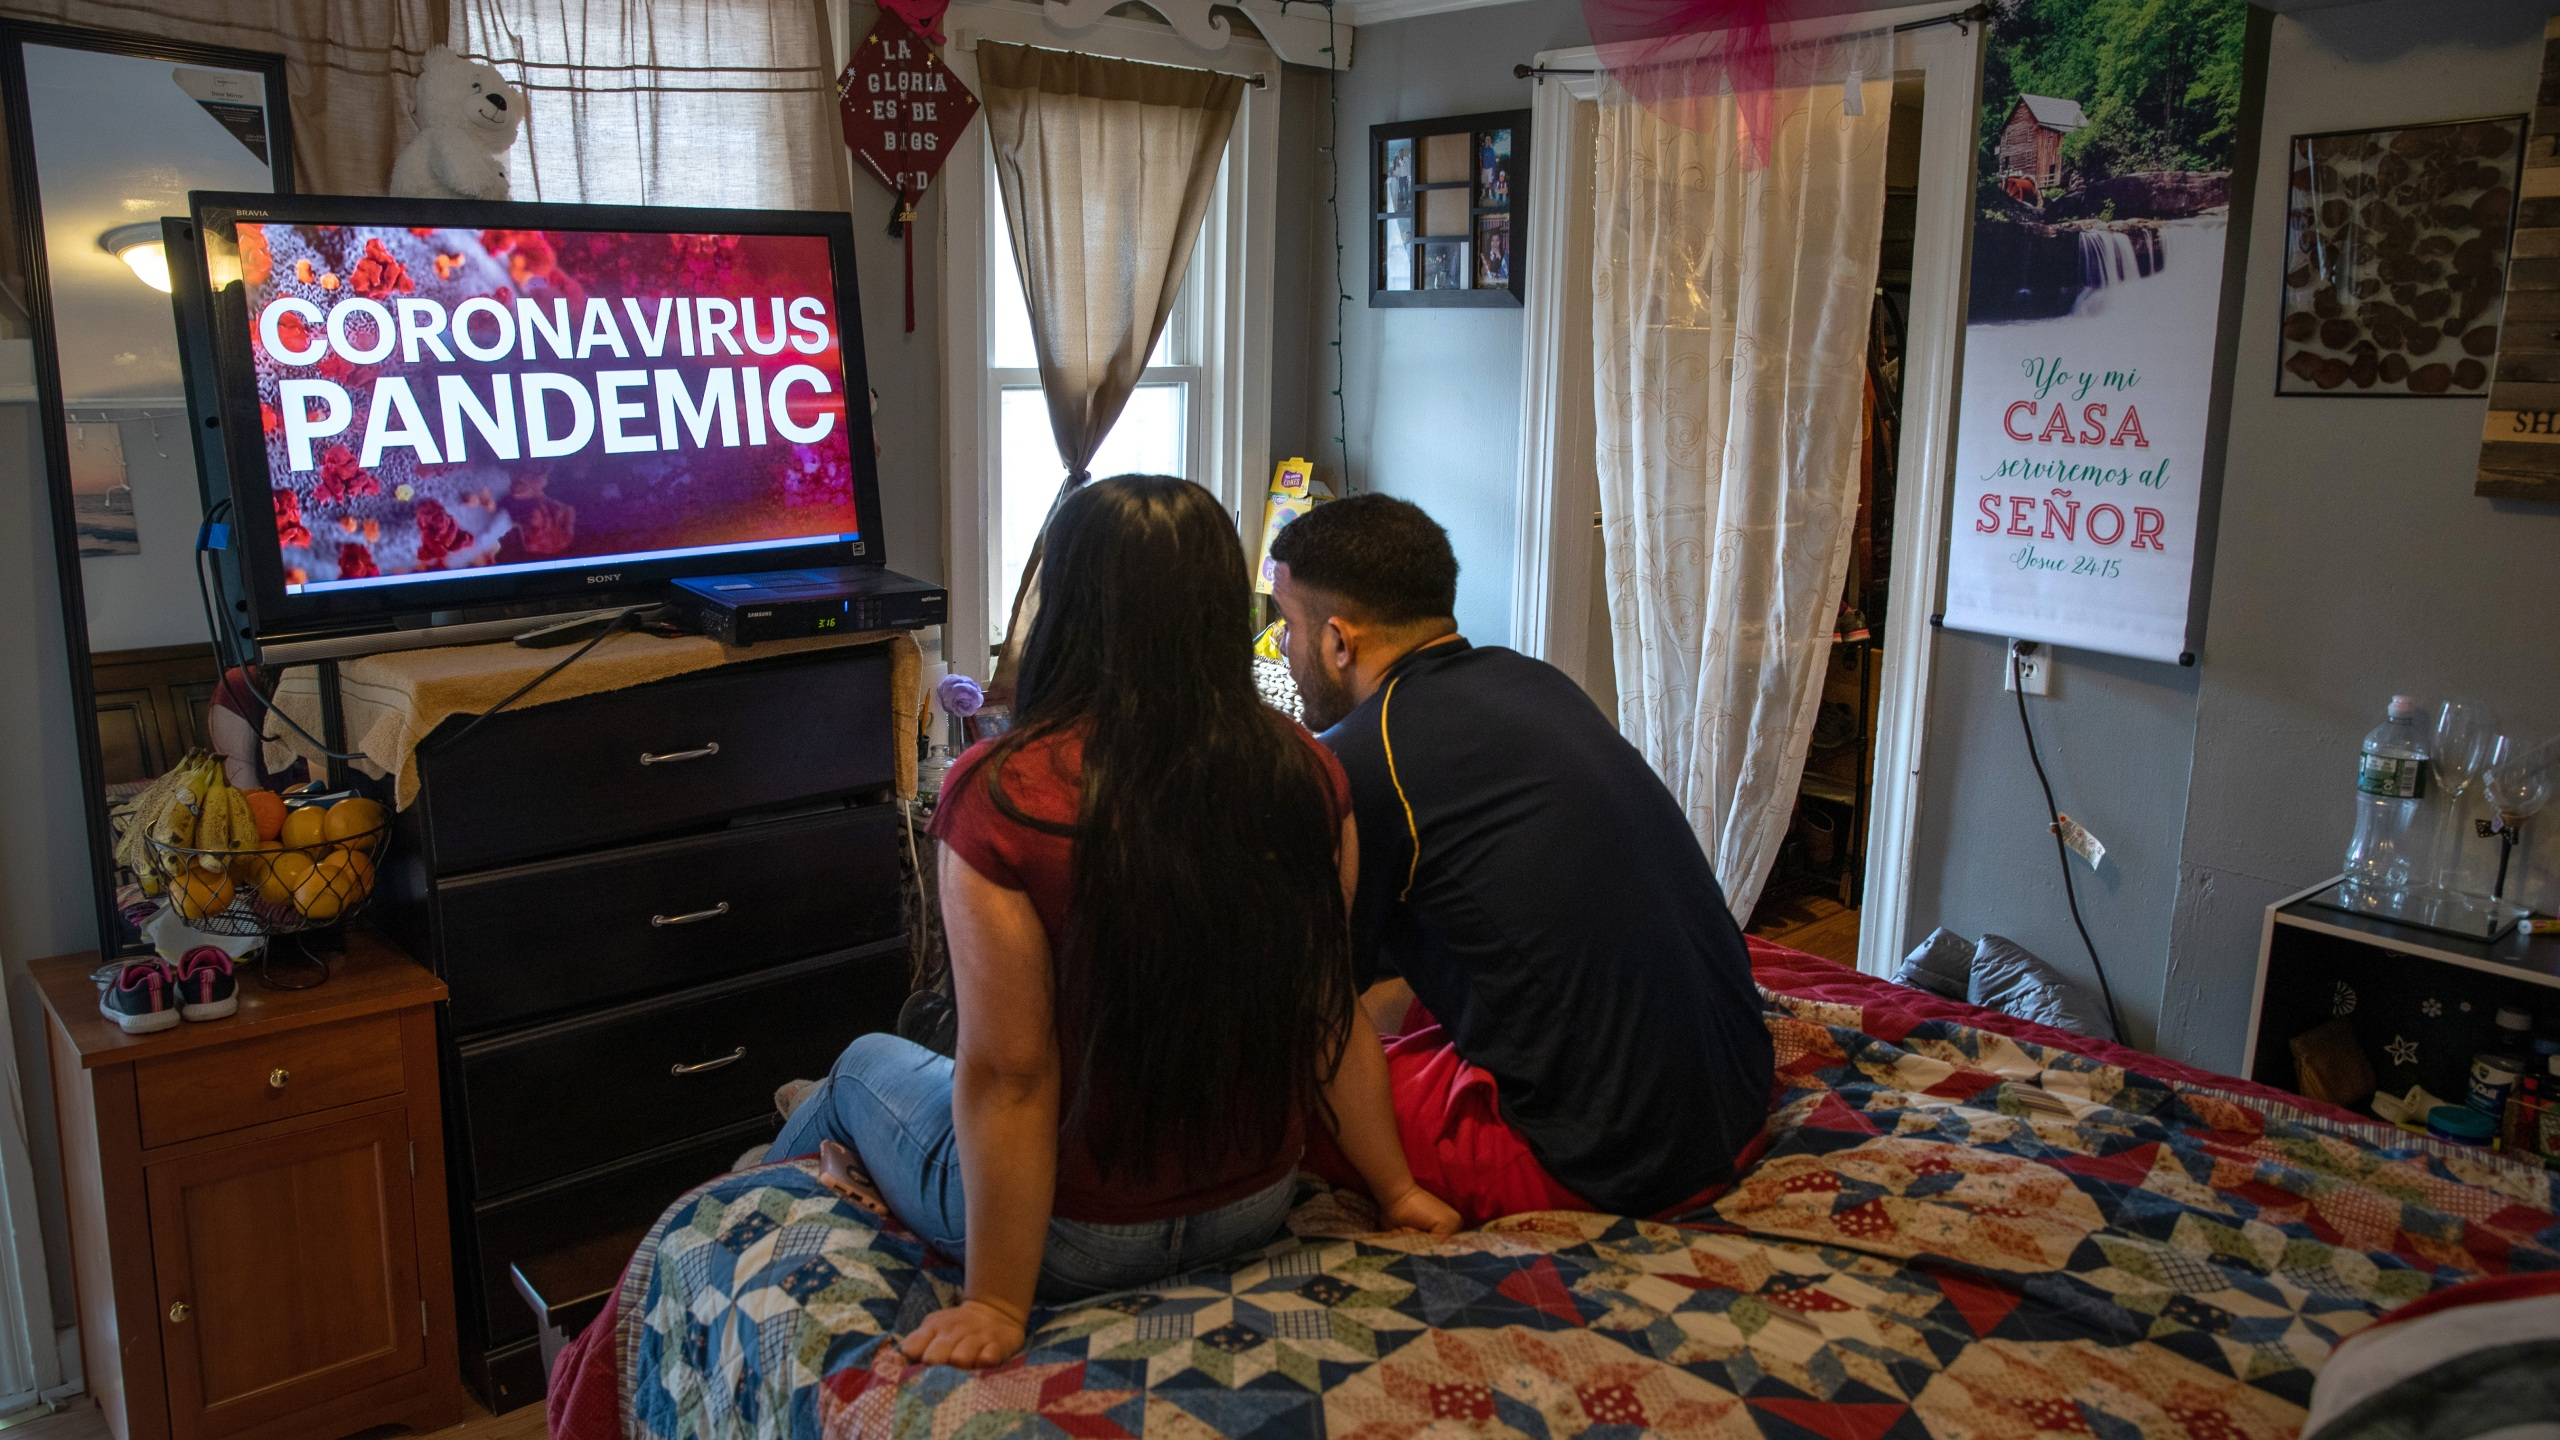 Undocumented immigrant Juana, 24, from El Salvador, and her husband Saul, 23, from Honduras, watch local news in their one-room apartment in Norwalk, Connecticut, on March 25, 2020. (Credit: John Moore / Getty Images)